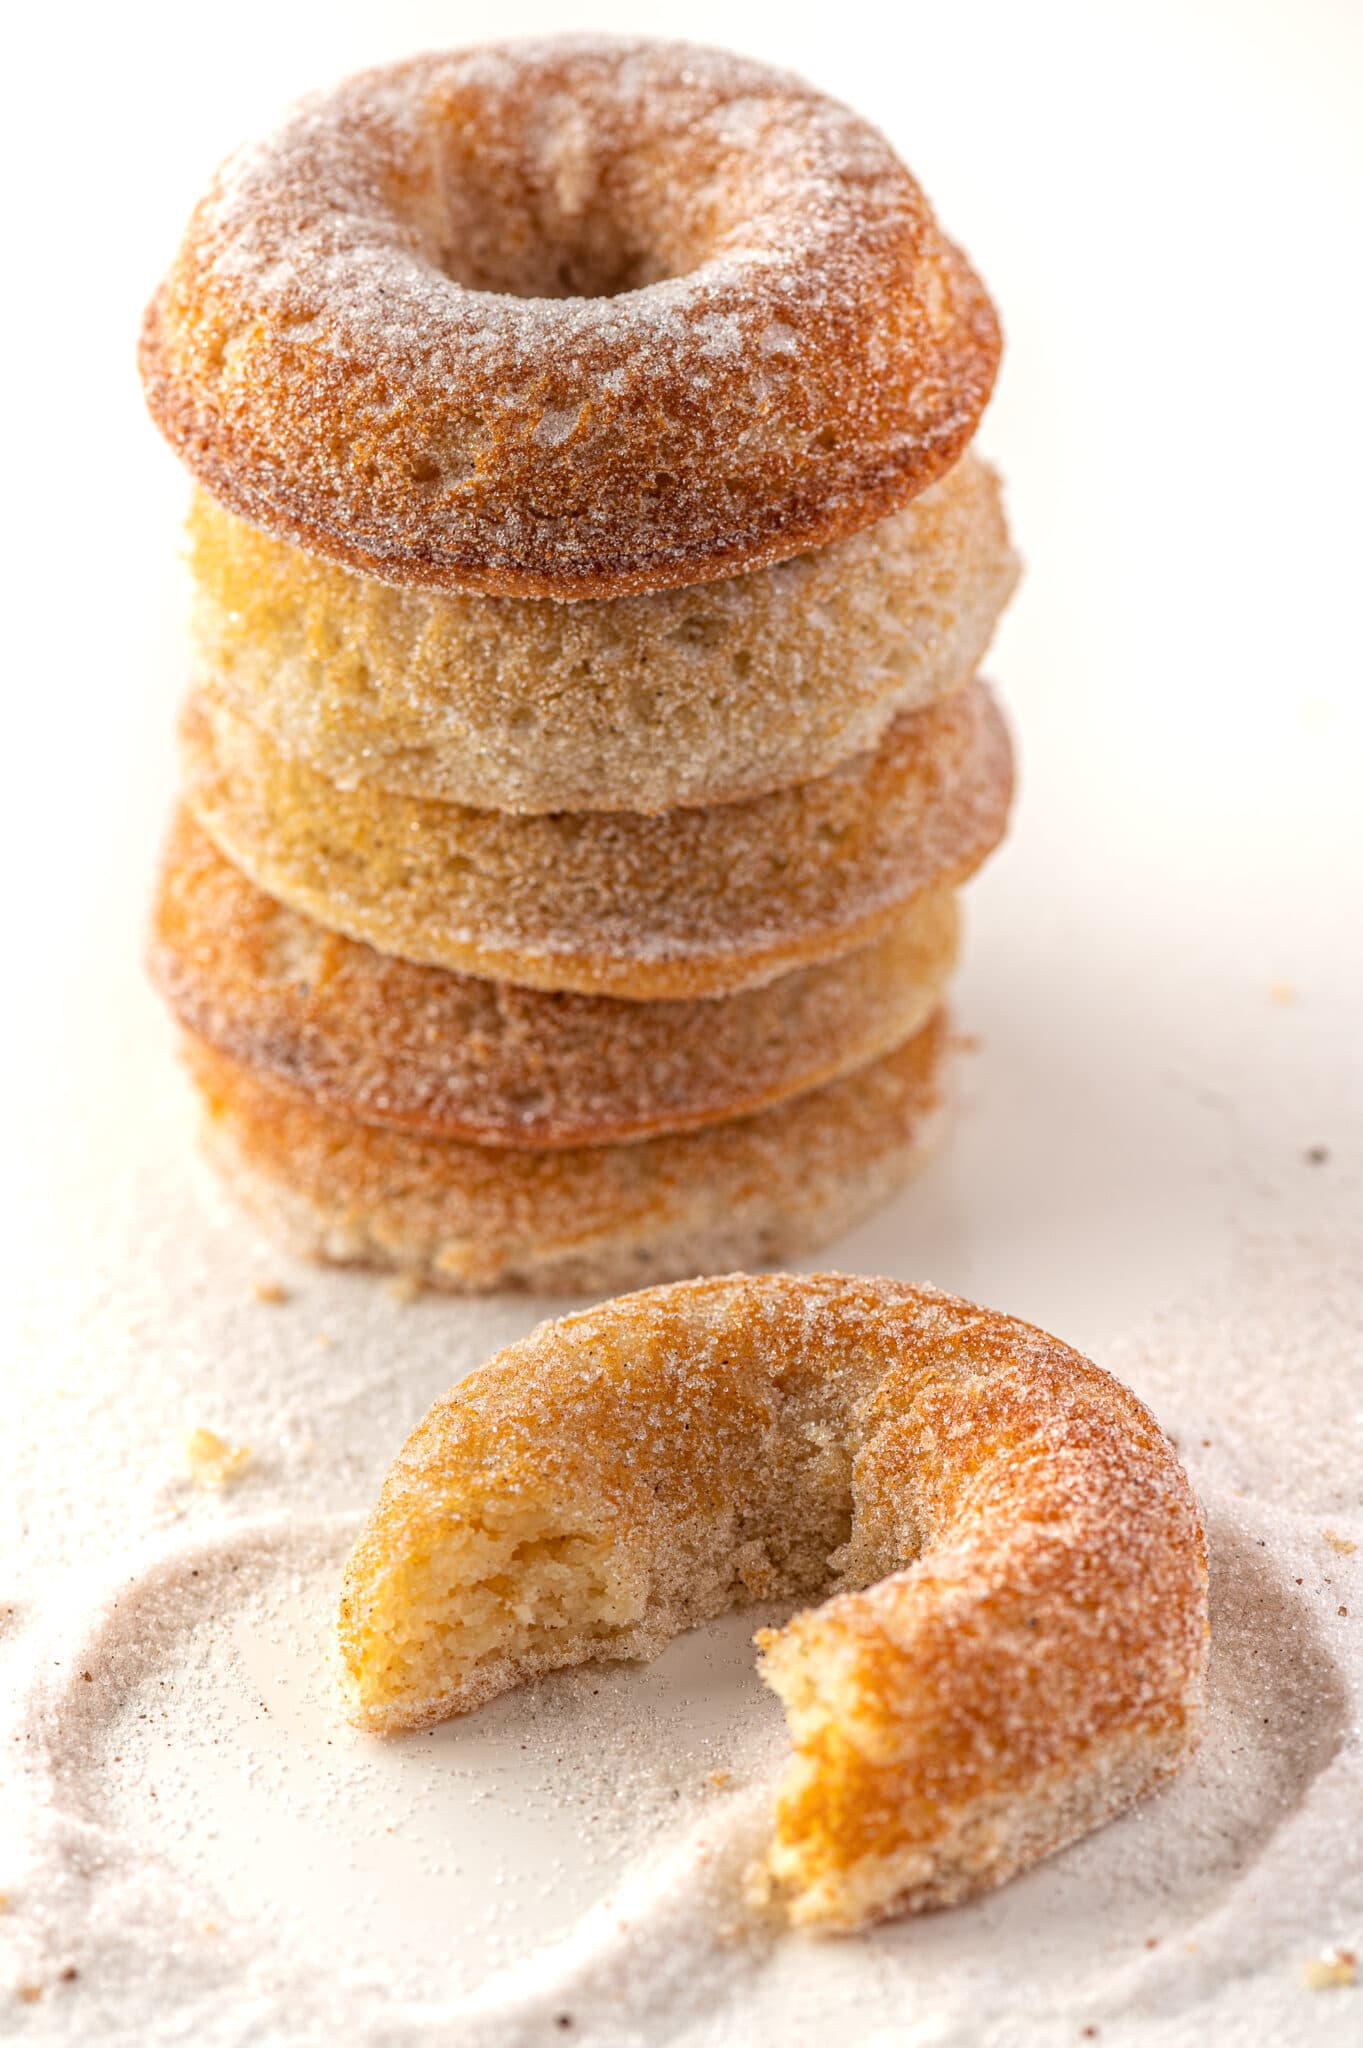 A stack of low carb donuts against a bright white background with sprinkled cinnamon sugar all over the table.